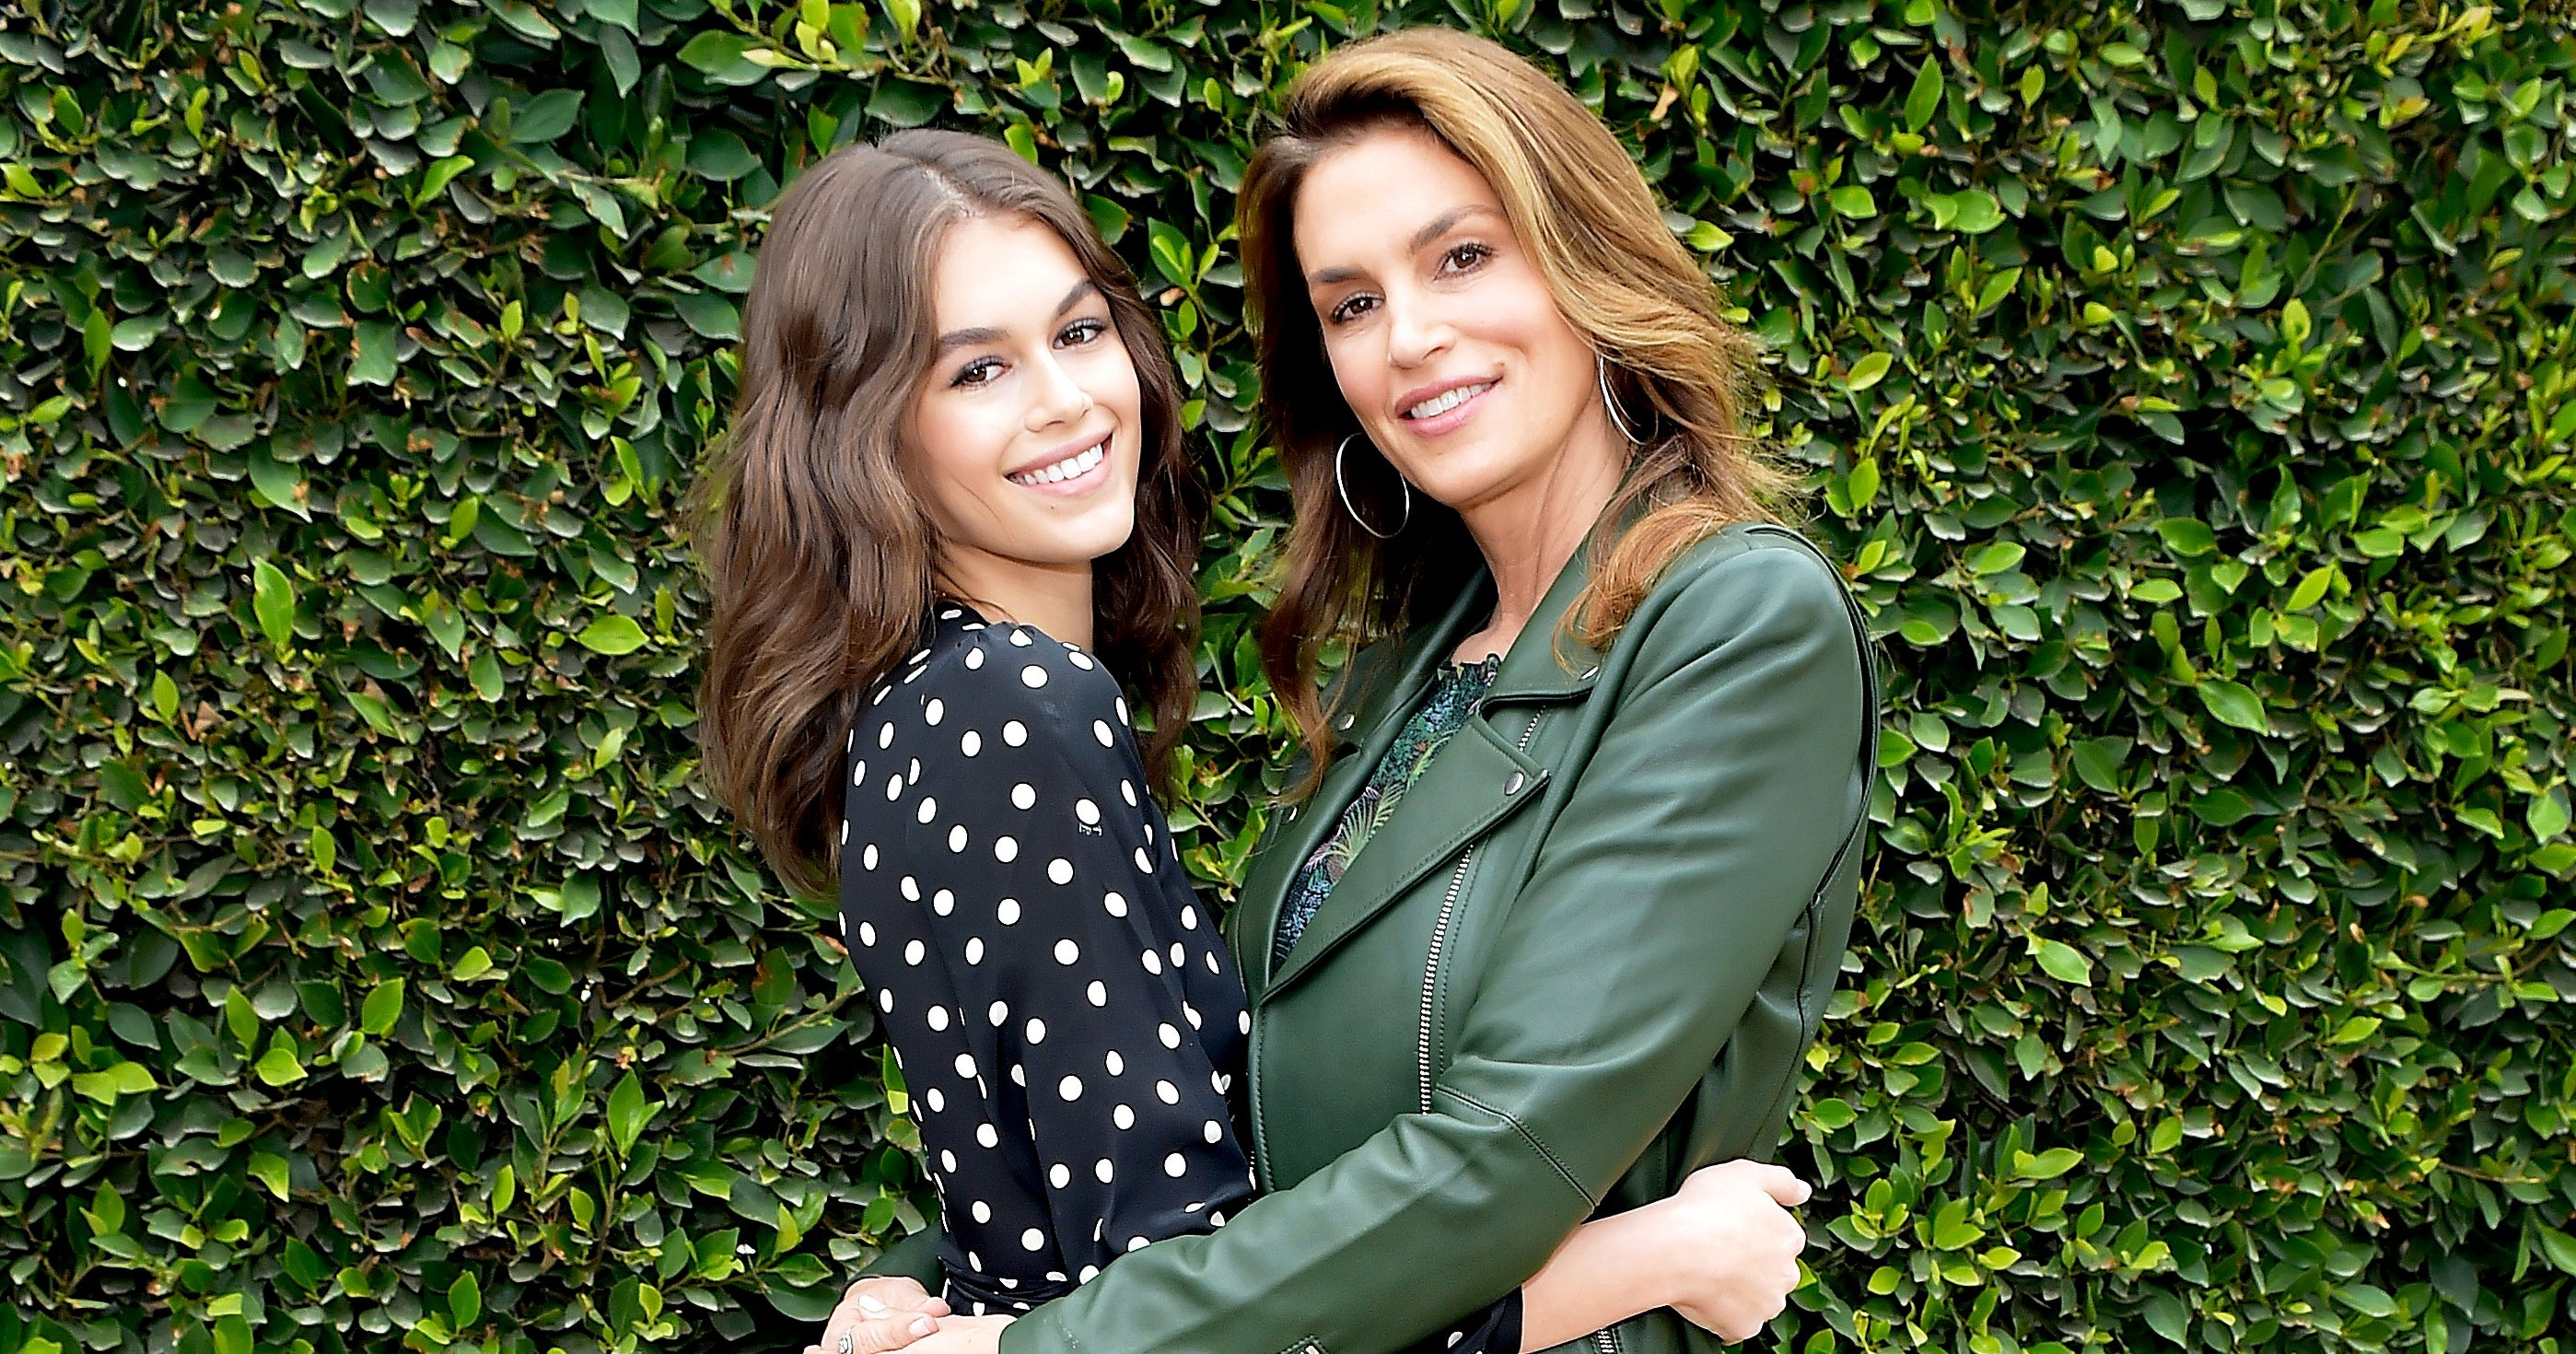 Cindy Crawford and Kaia Gerber's Best Mother-Daughter Style Moments